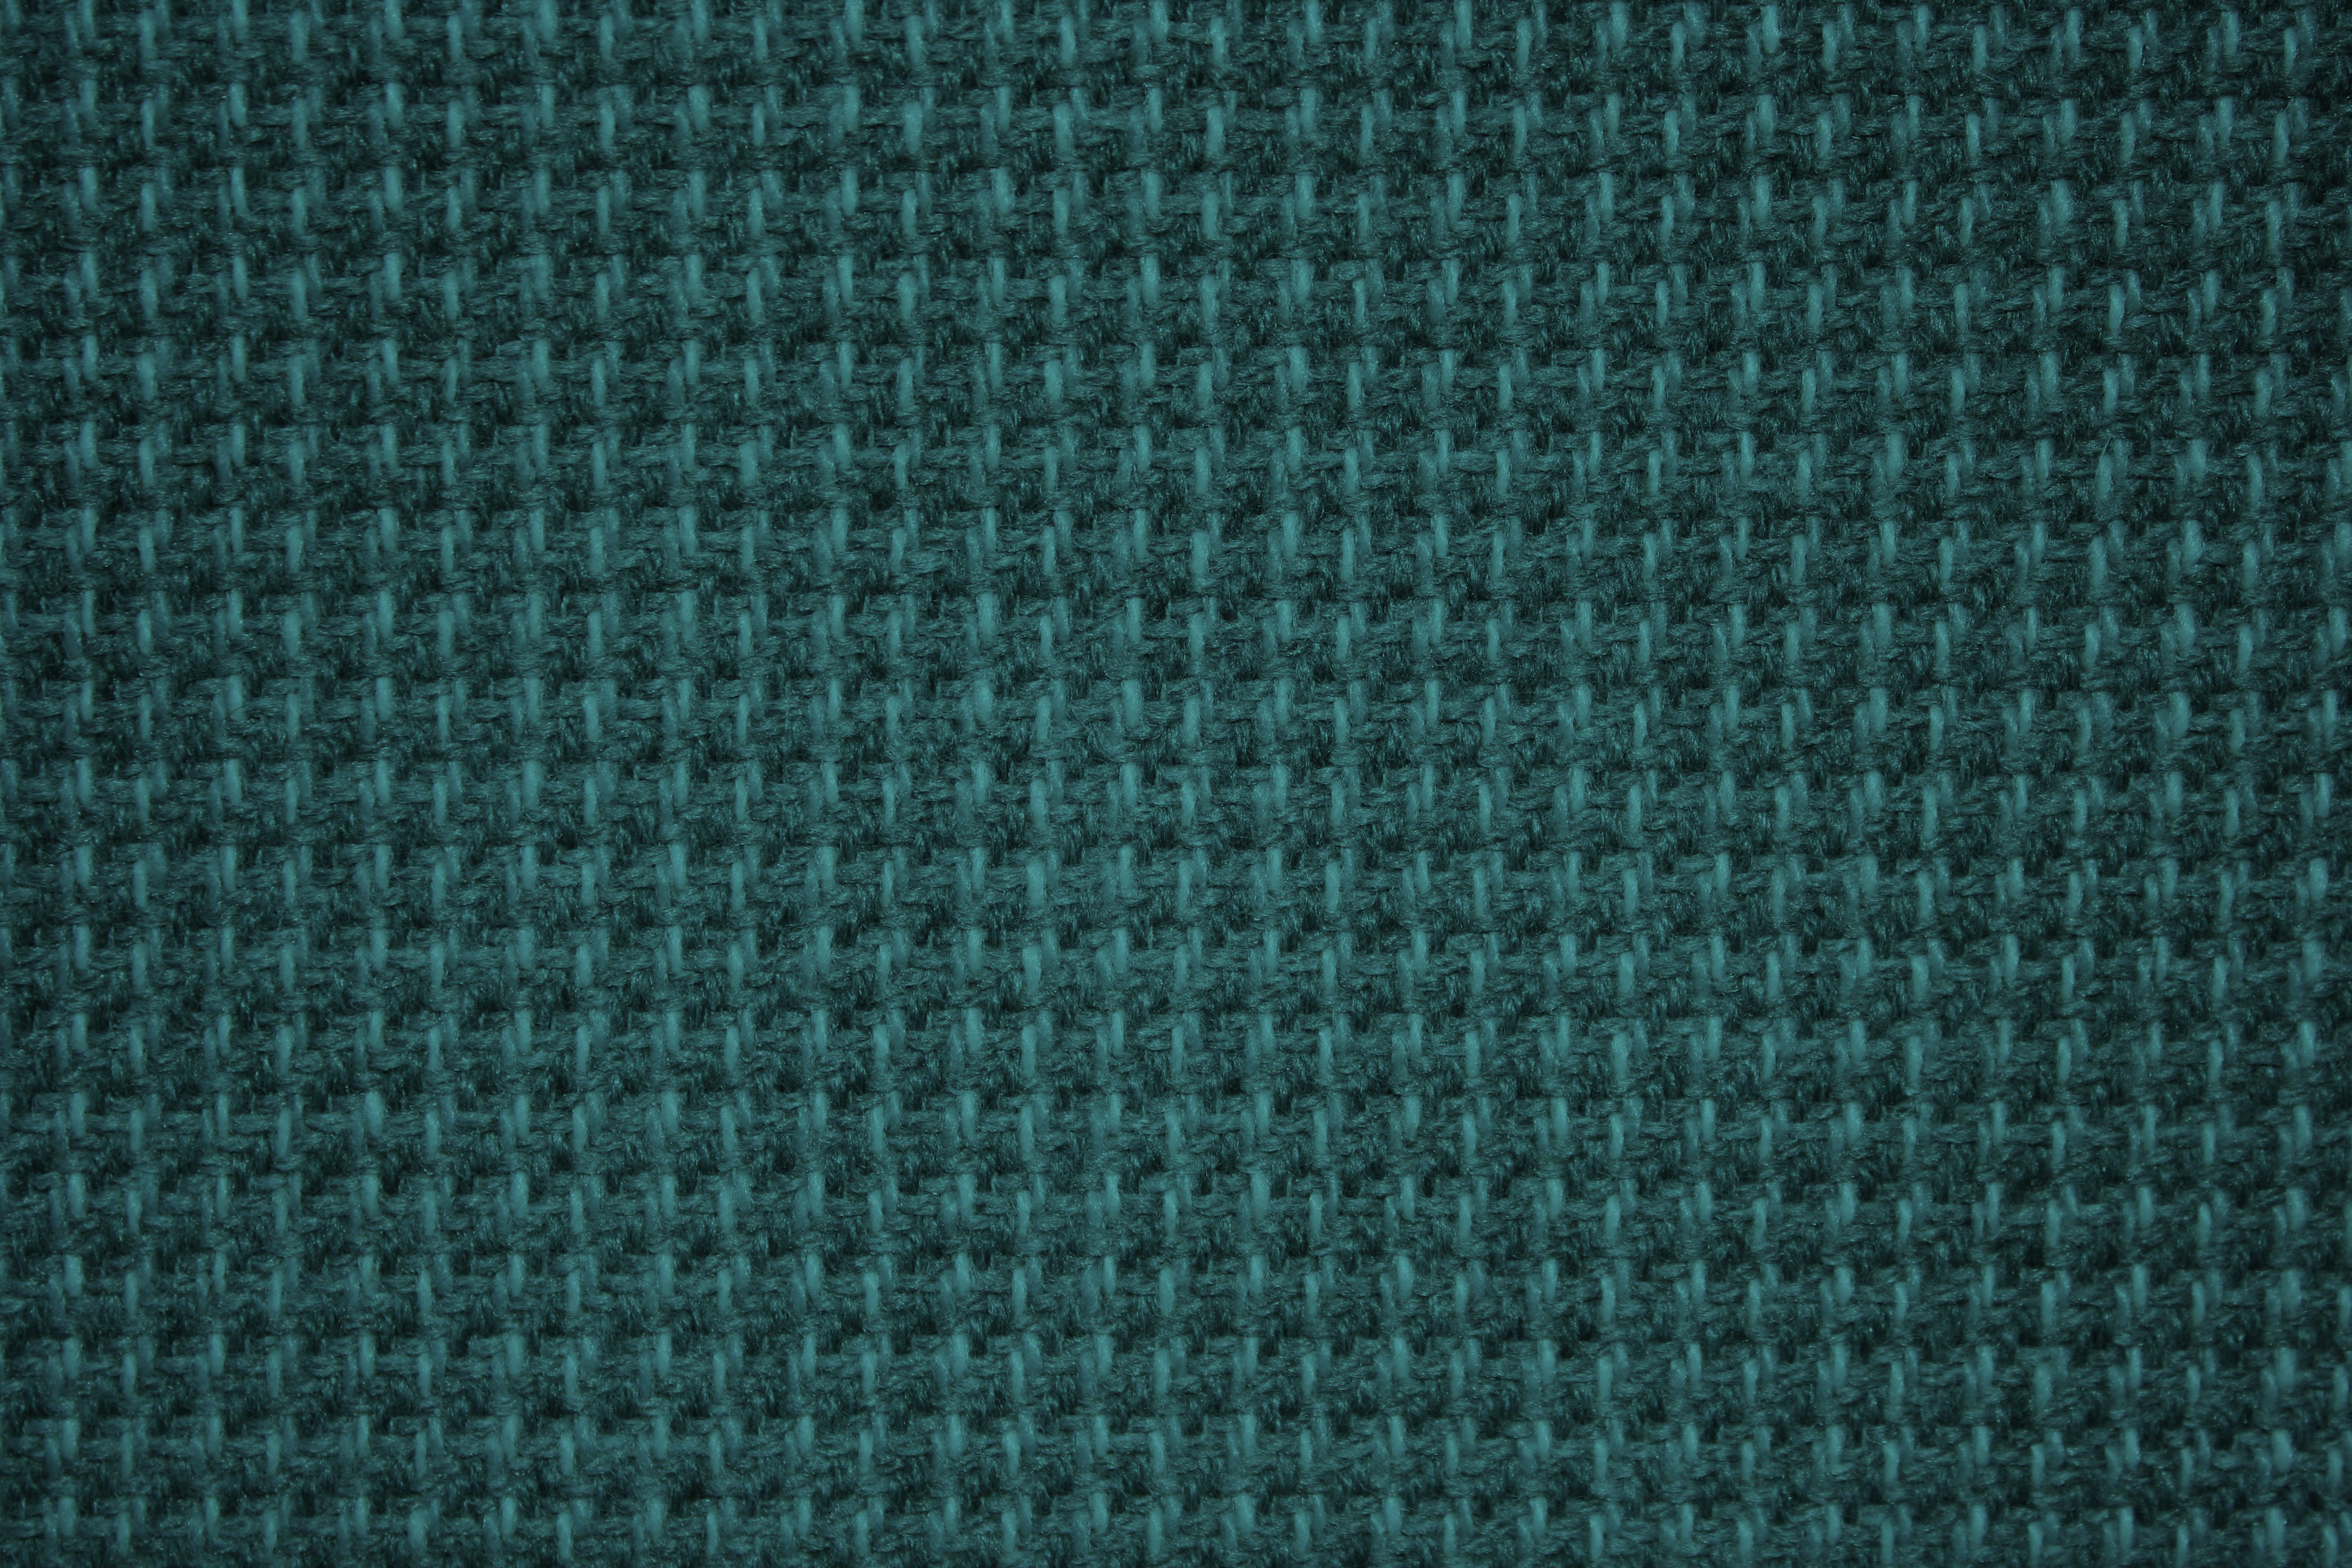 Teal Upholstery Fabric Texture Picture Free Photograph